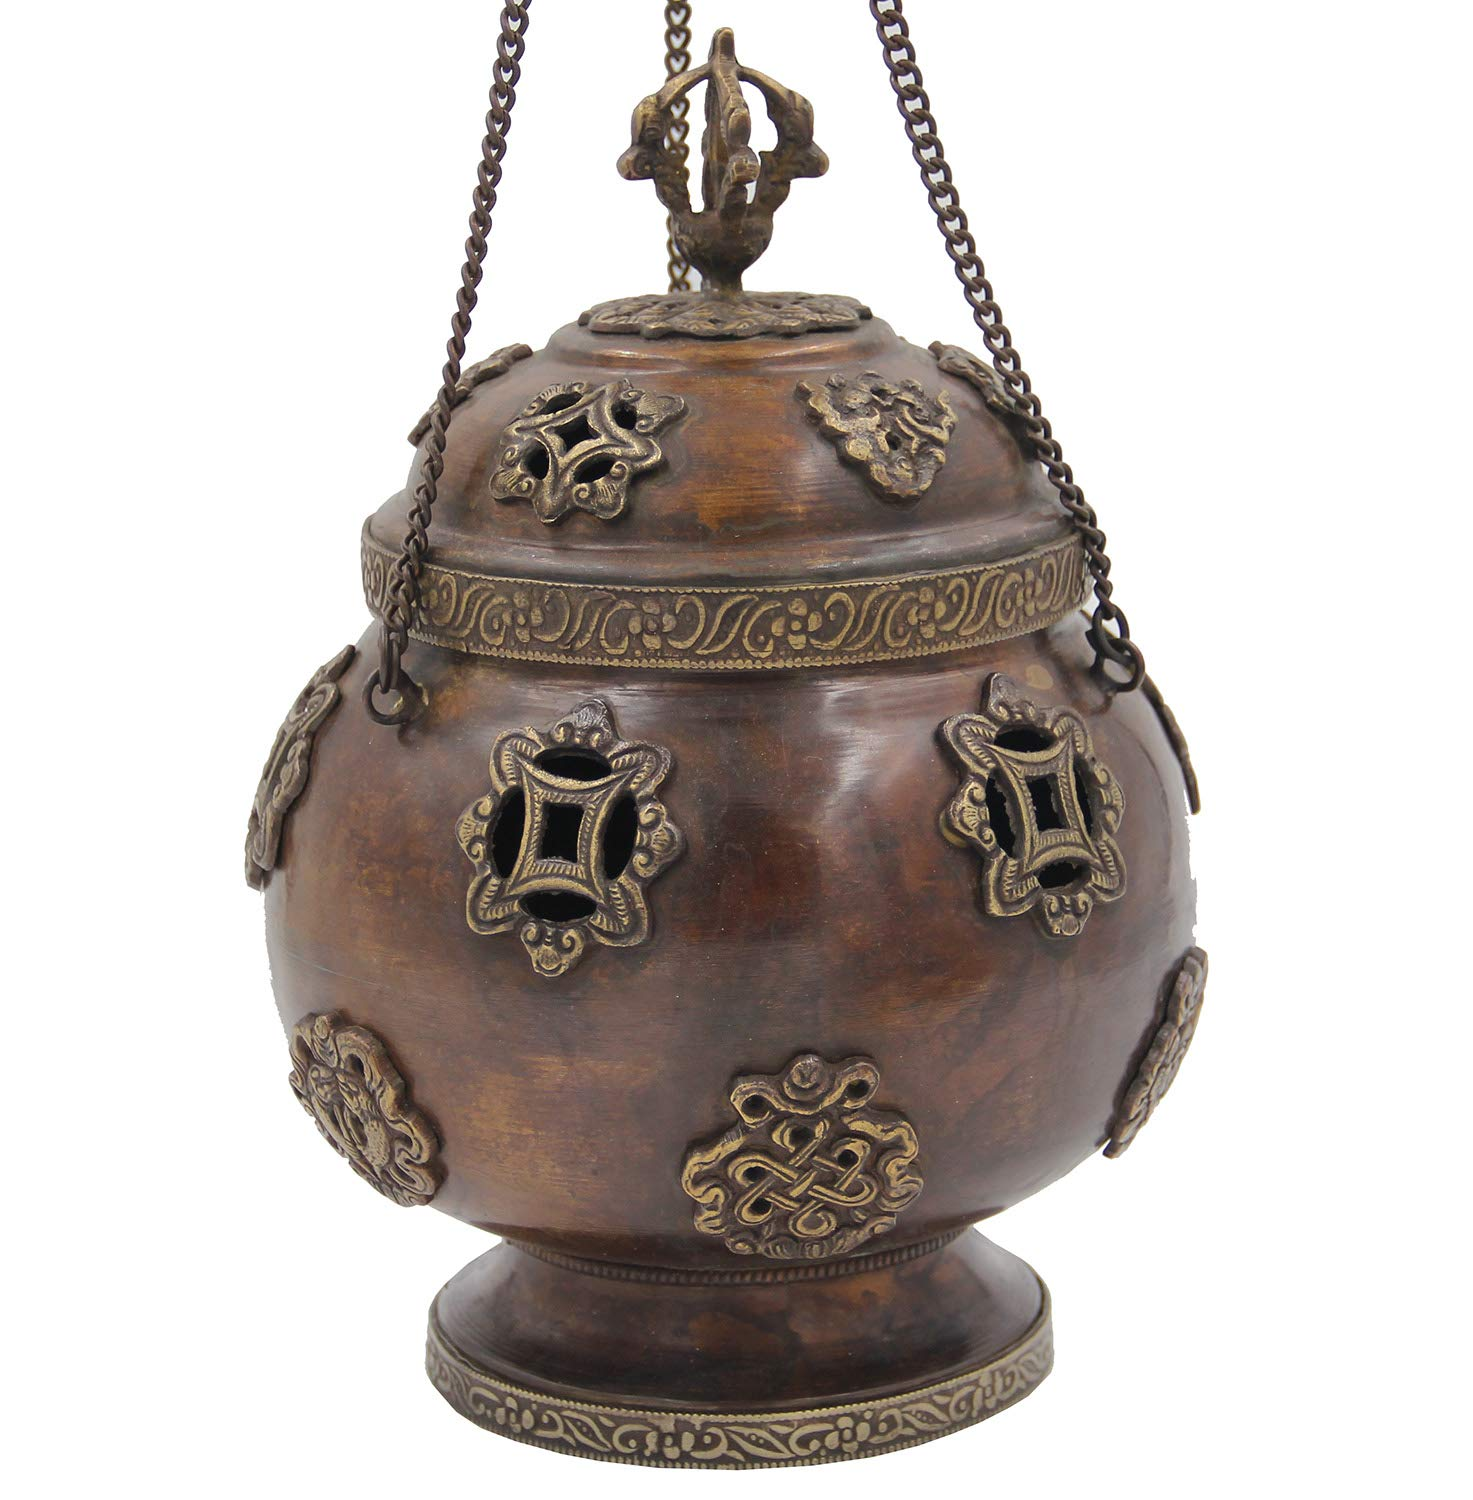 DharmaObjects Tibetan Traditional Hanging Incense Burner Copper (6 x 4.5 x 4.5 Inches, Hanging 8) by DharmaObjects (Image #1)